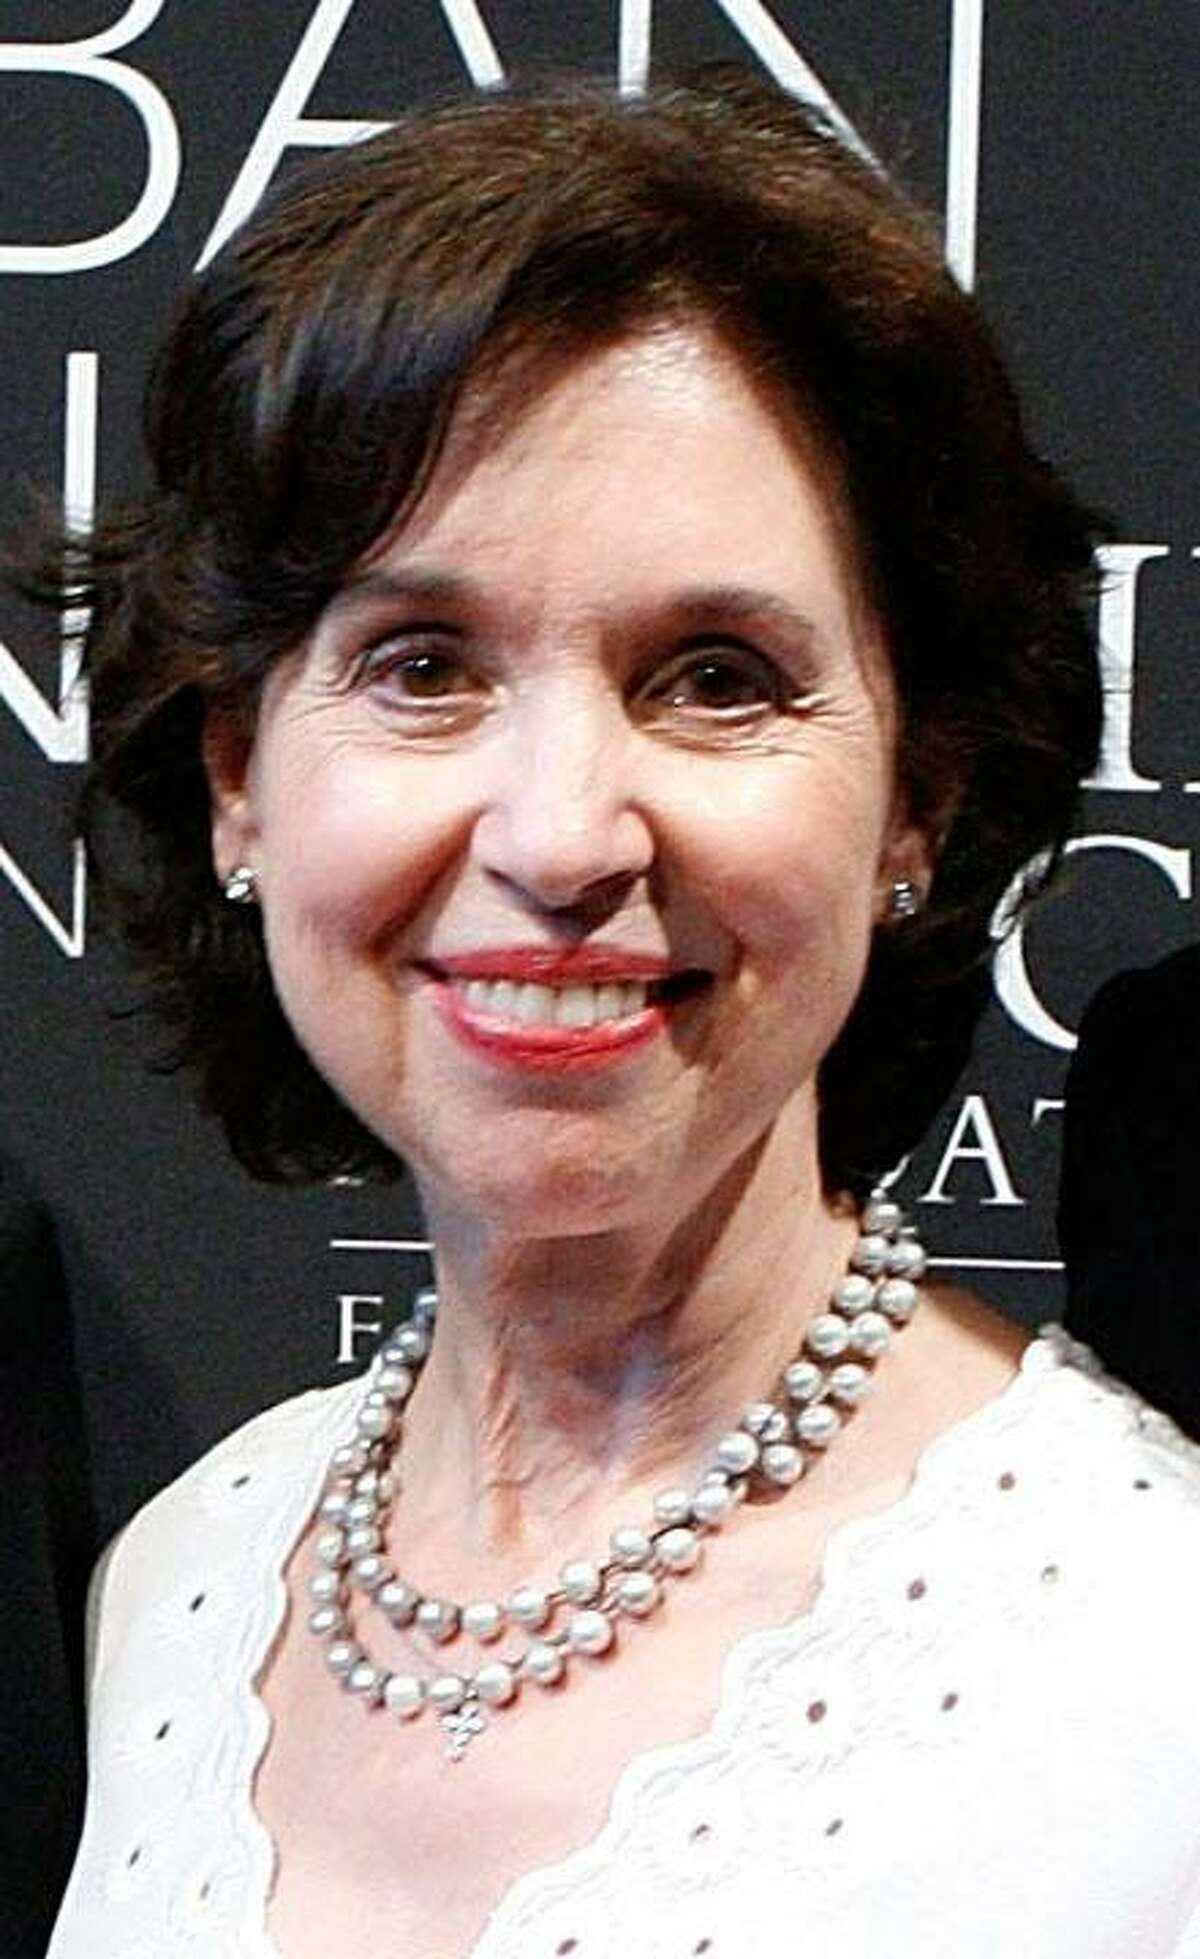 Barbara Dalio attended the Operation Warrior Wellness launch at the Urban Zen Center At Stephan Weiss Studio on June 7, 2011 in New York City.